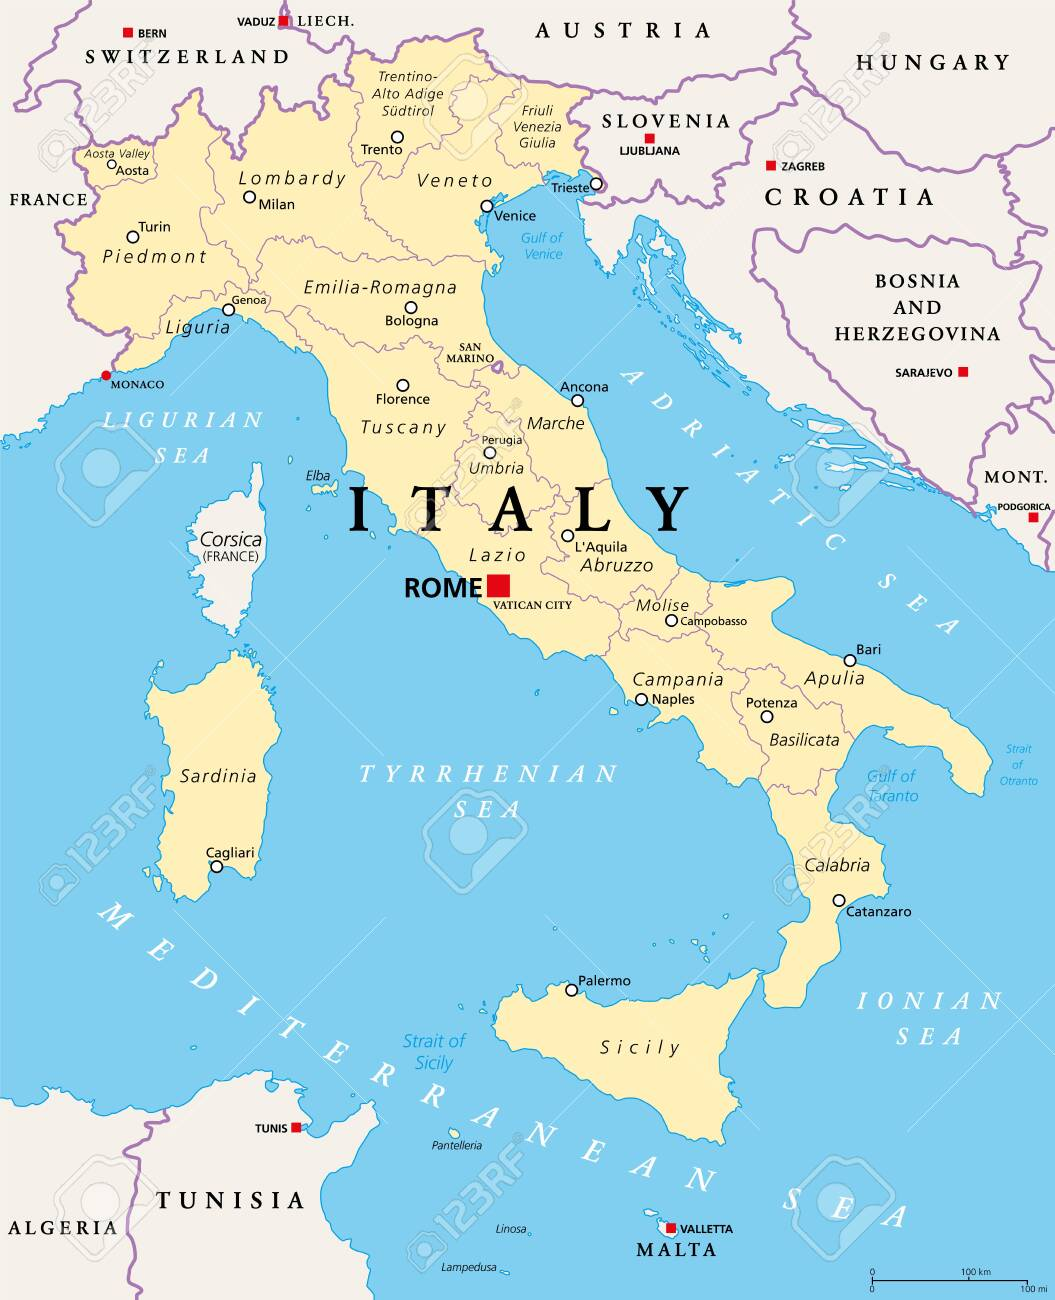 Italy, political map, administrative divisions. Italian Republic with capital Rome, 20 regions and their capitals, international borders and neighbor countries. English labeling. Illustration. Vector. - 142686115